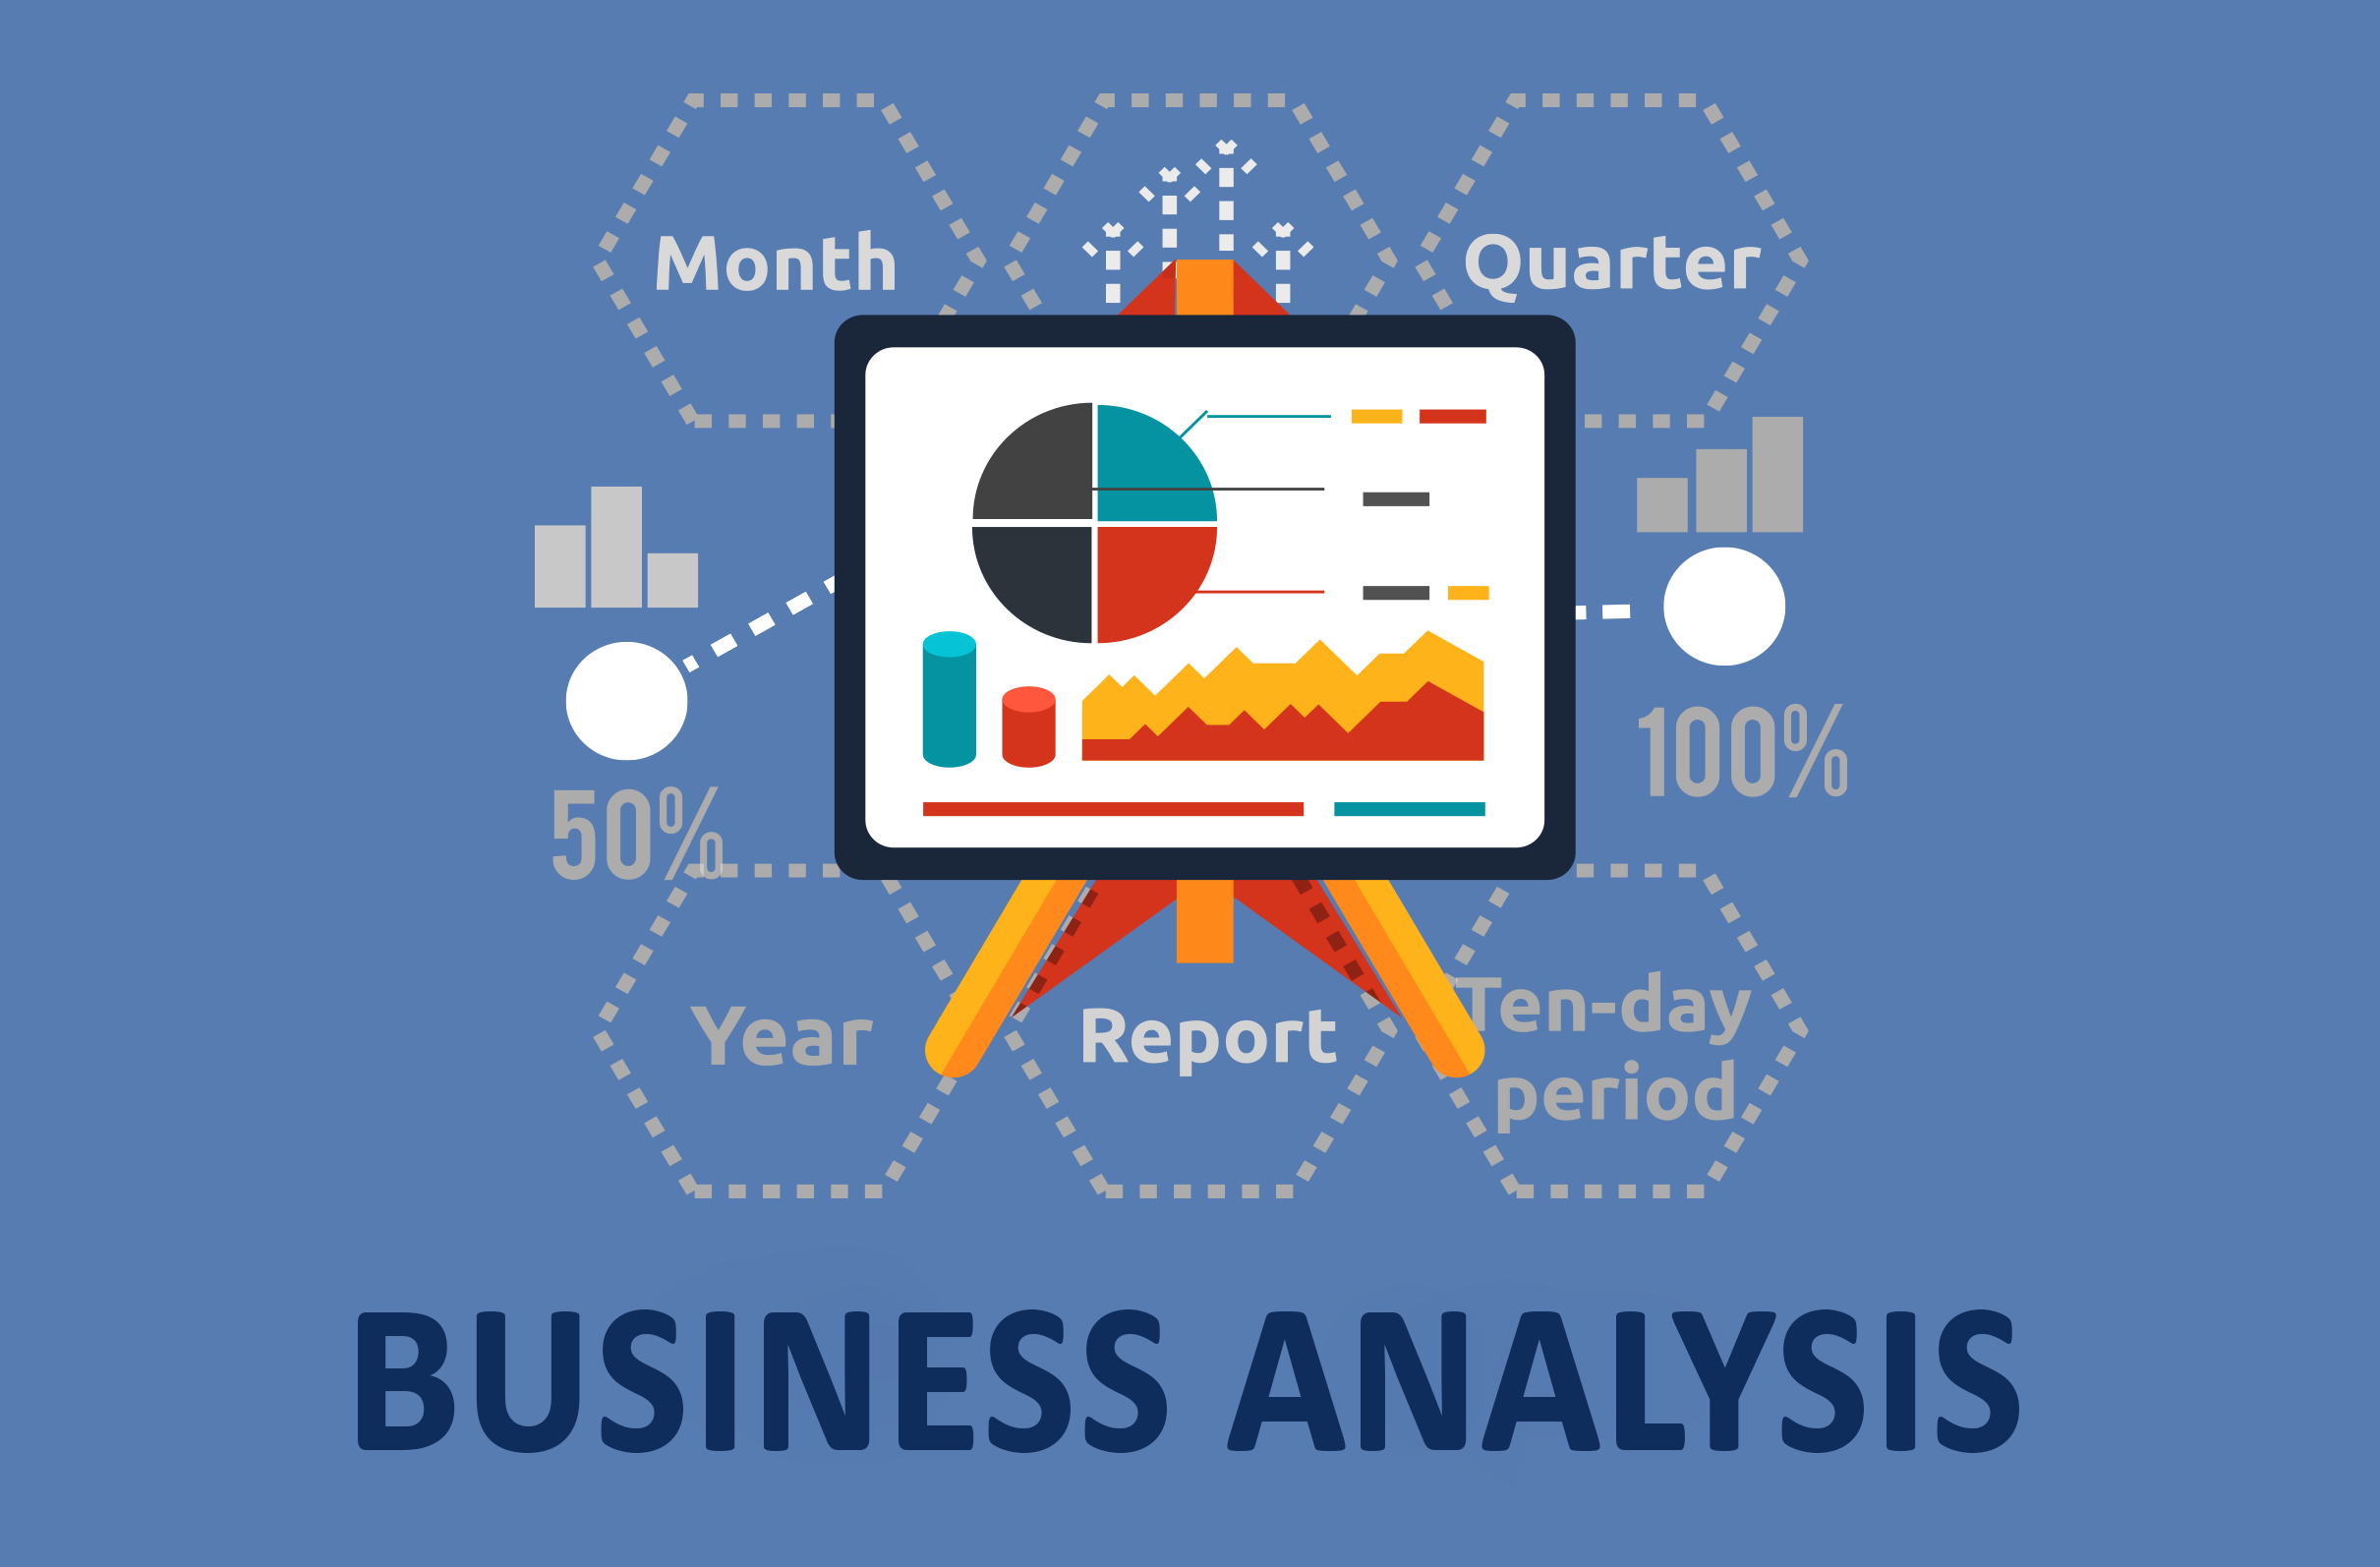 Business Analyst Training And Necessary Skill Requirements